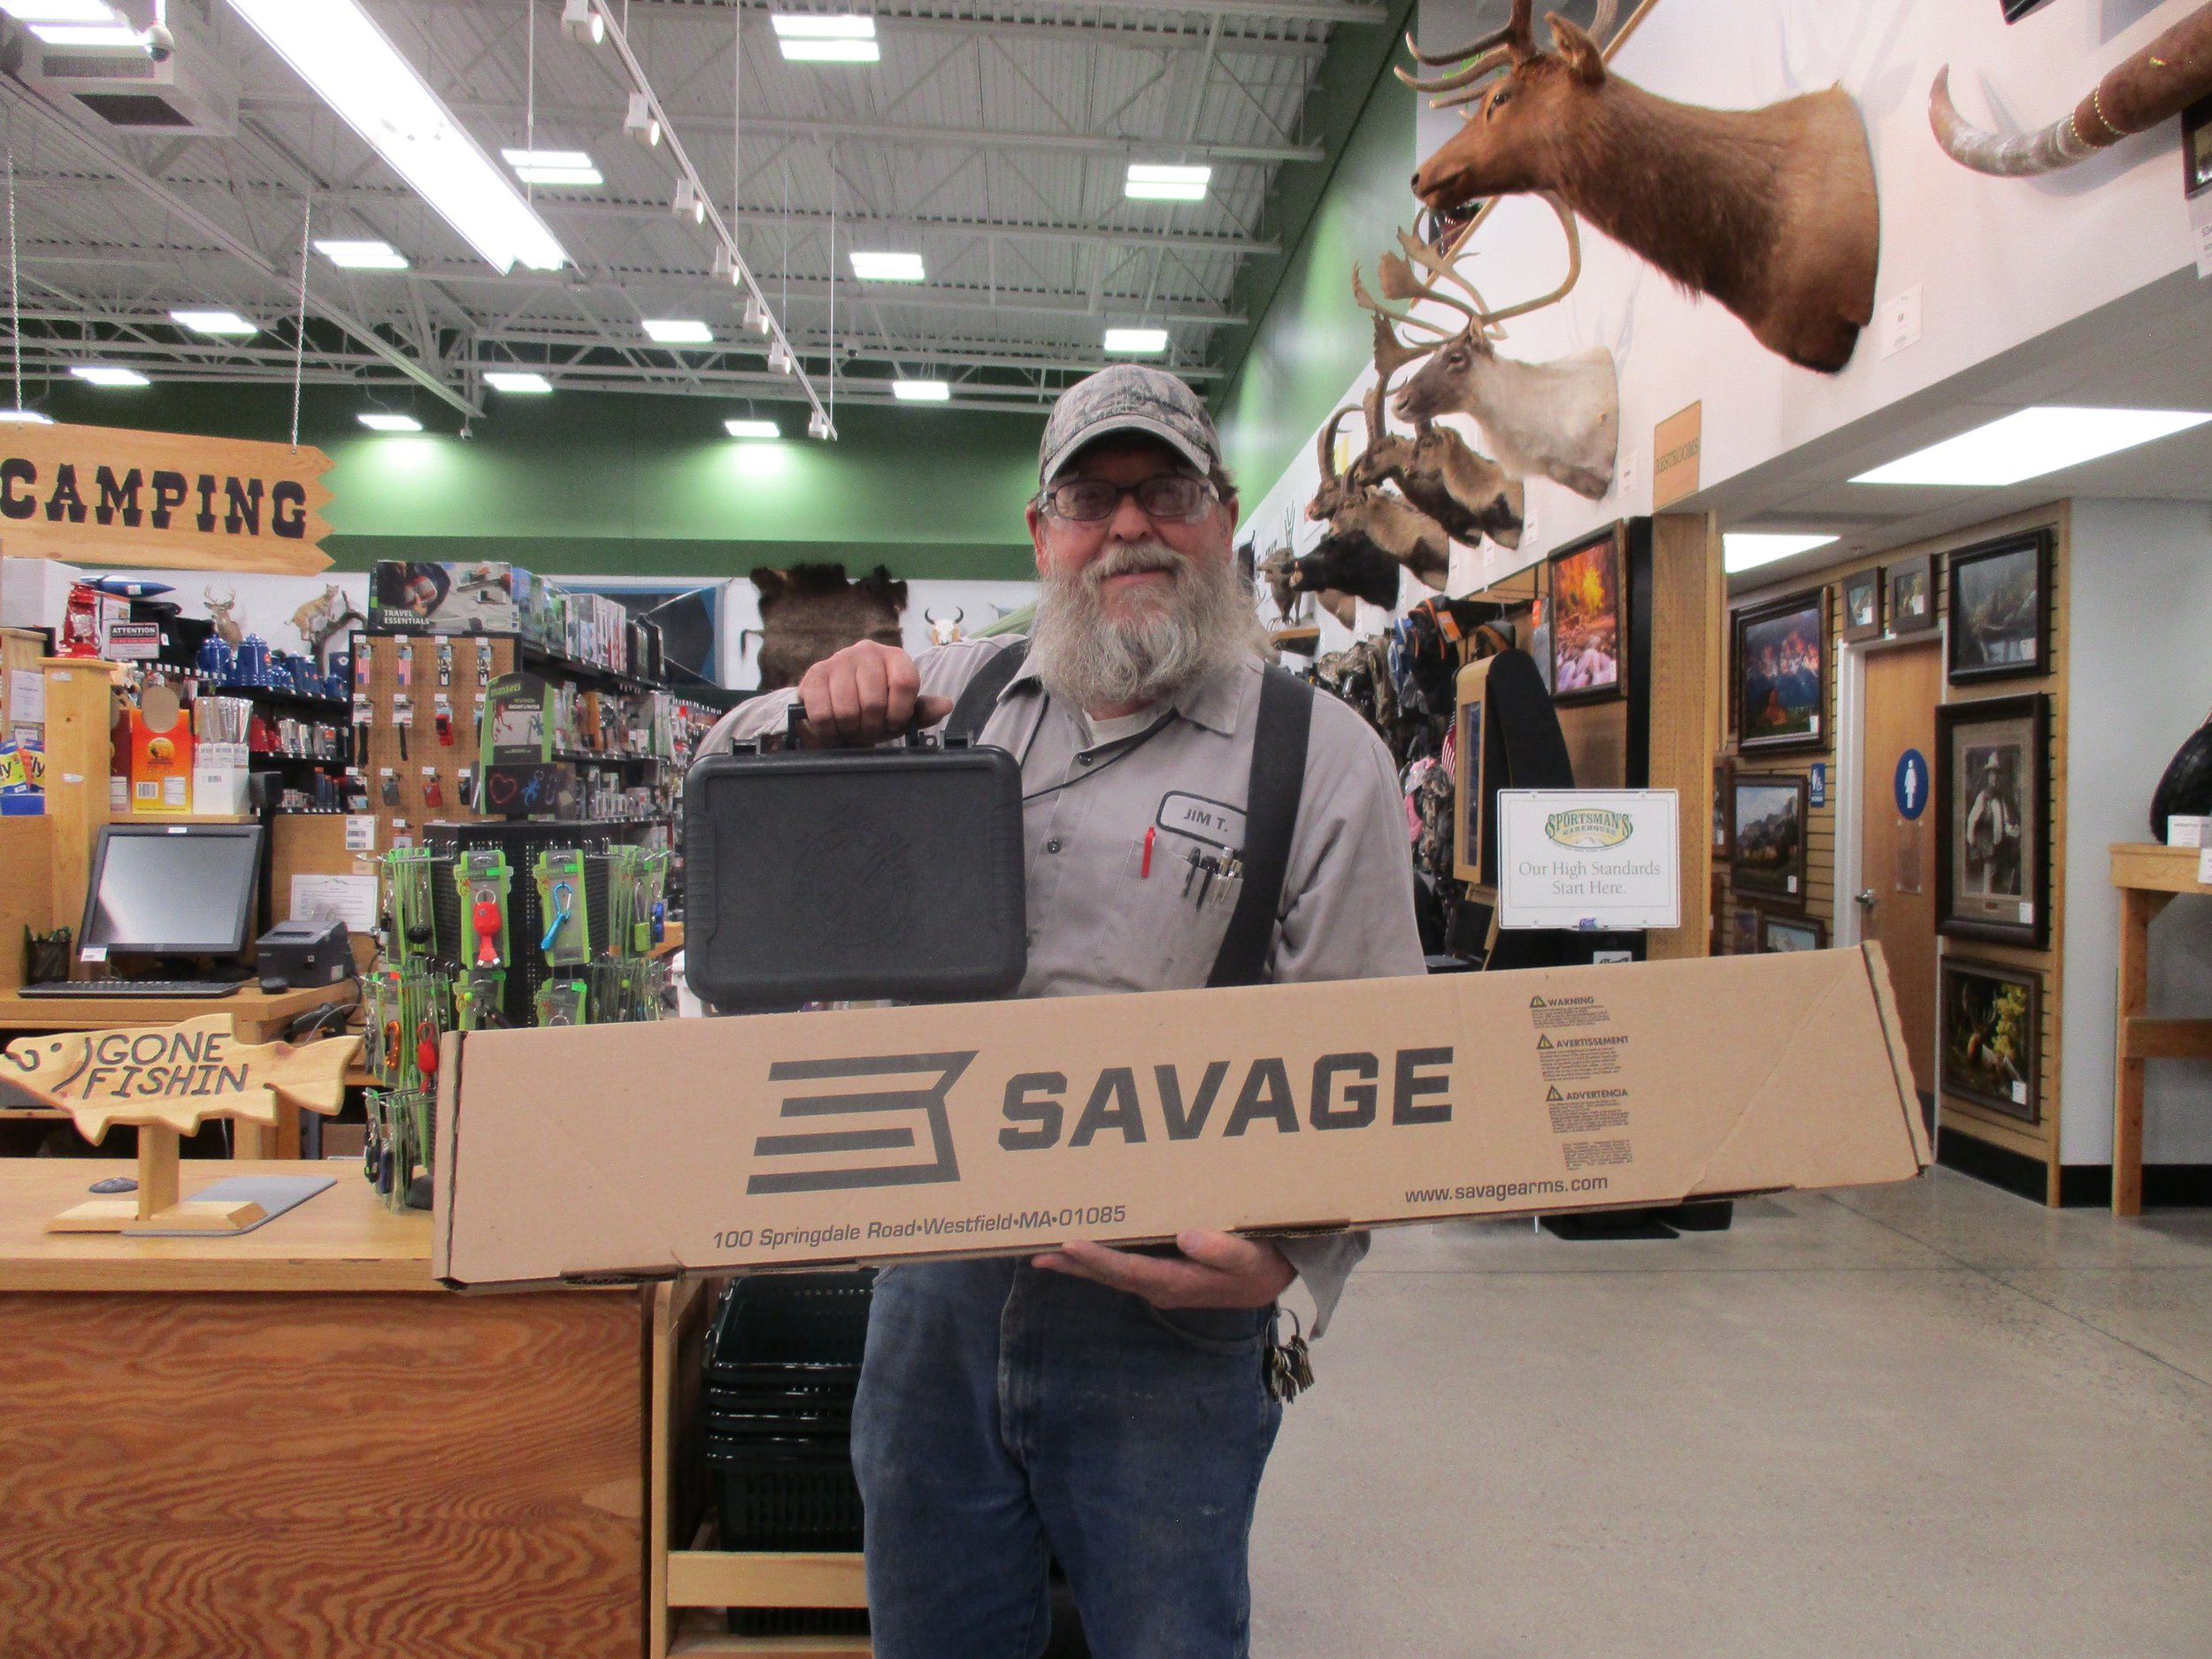 The winner of our gun raffle, Jim Tackett. This year our winner walked away with a new Savage Rifle and a Springfield Pistol. Congratulations Jim! Best of luck to everyone else next year!